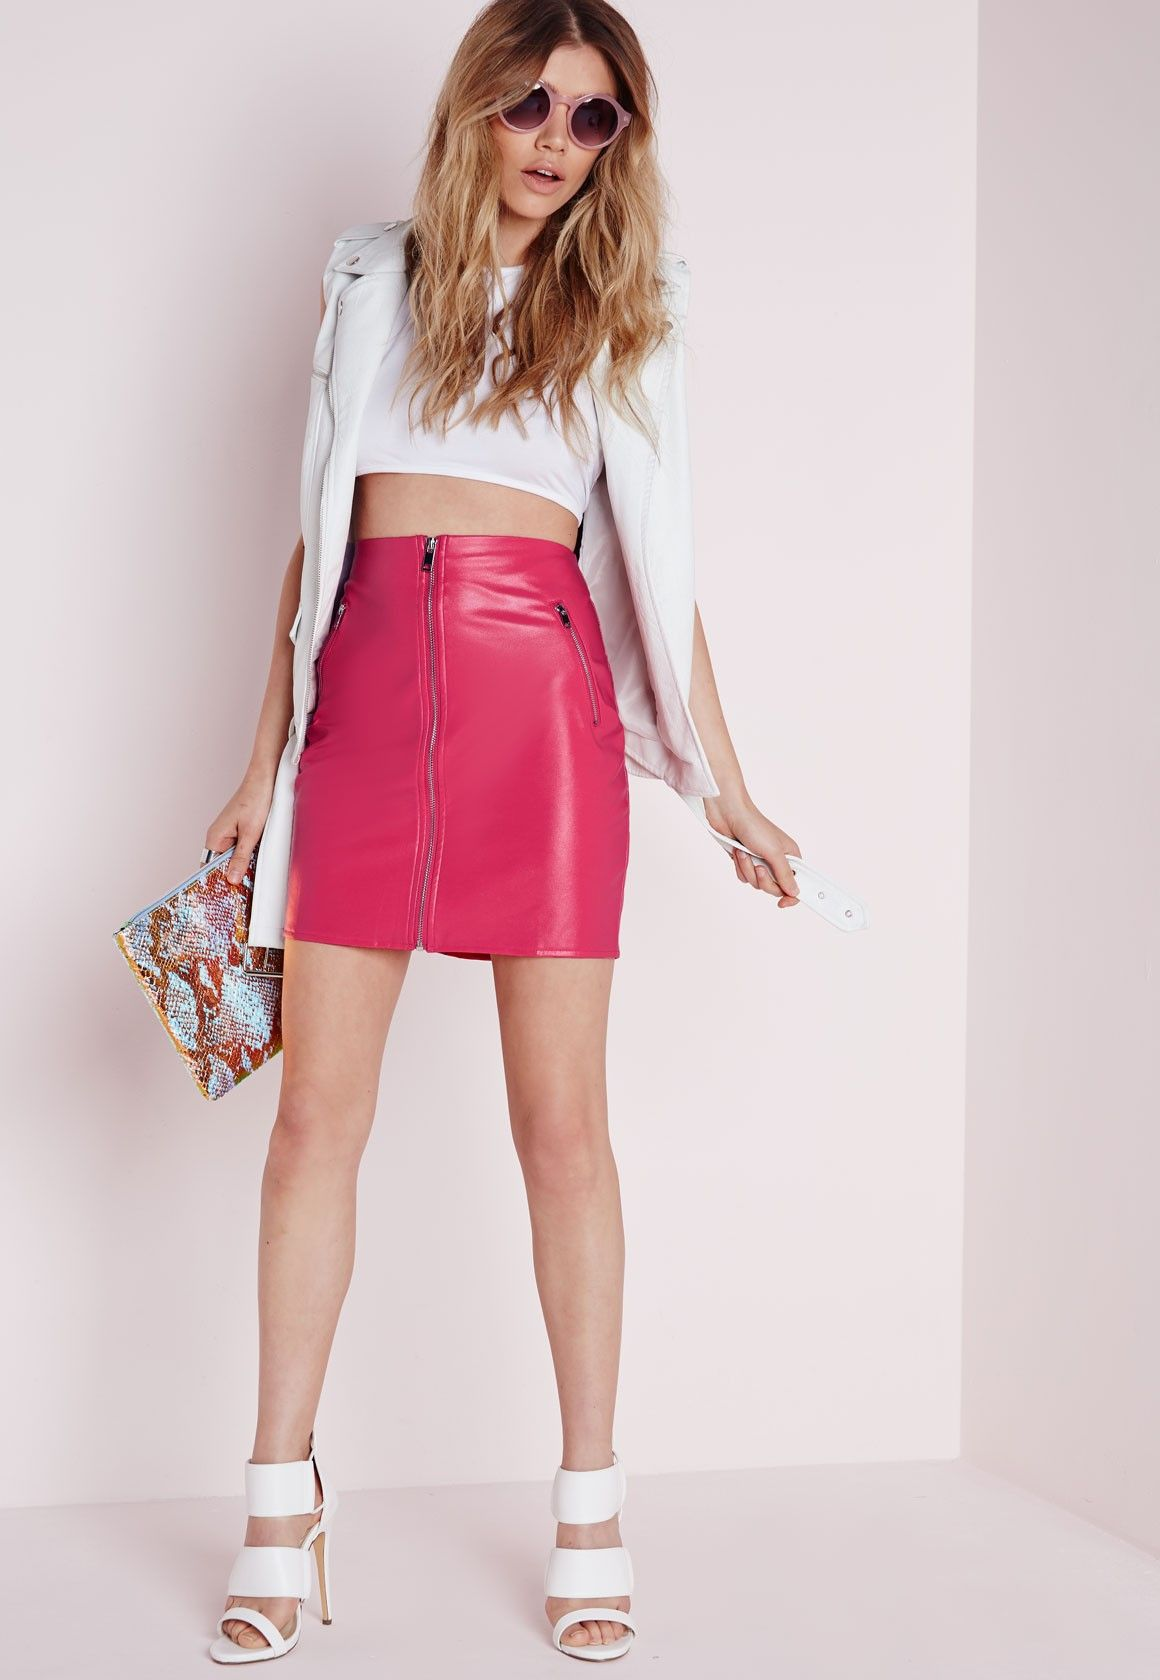 Missguided - Zip Front Faux Leather Mini Skirt Pink